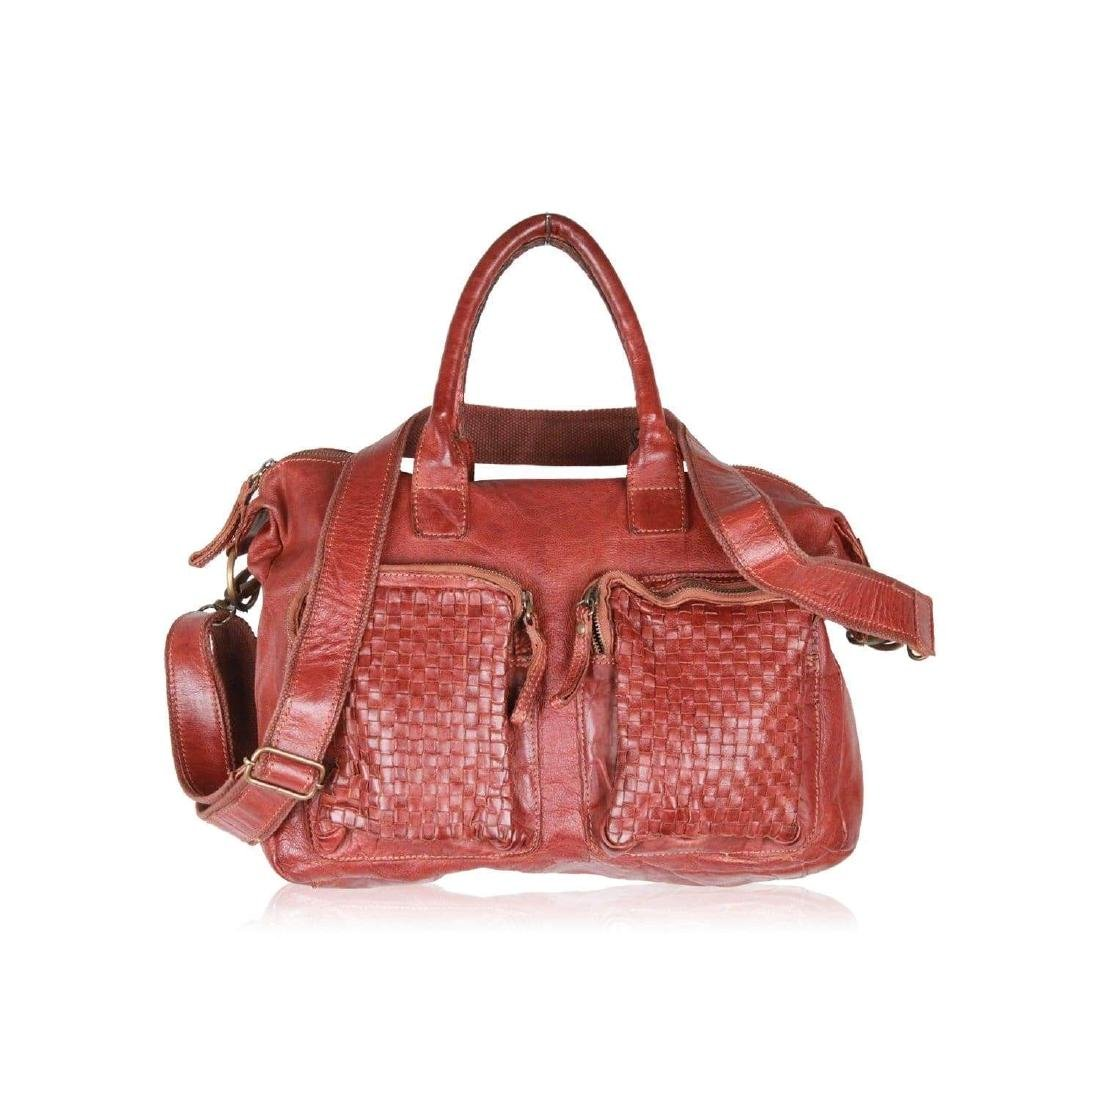 COWBOYSBAG Brown Leather THE BAG Satchel with WOVEN